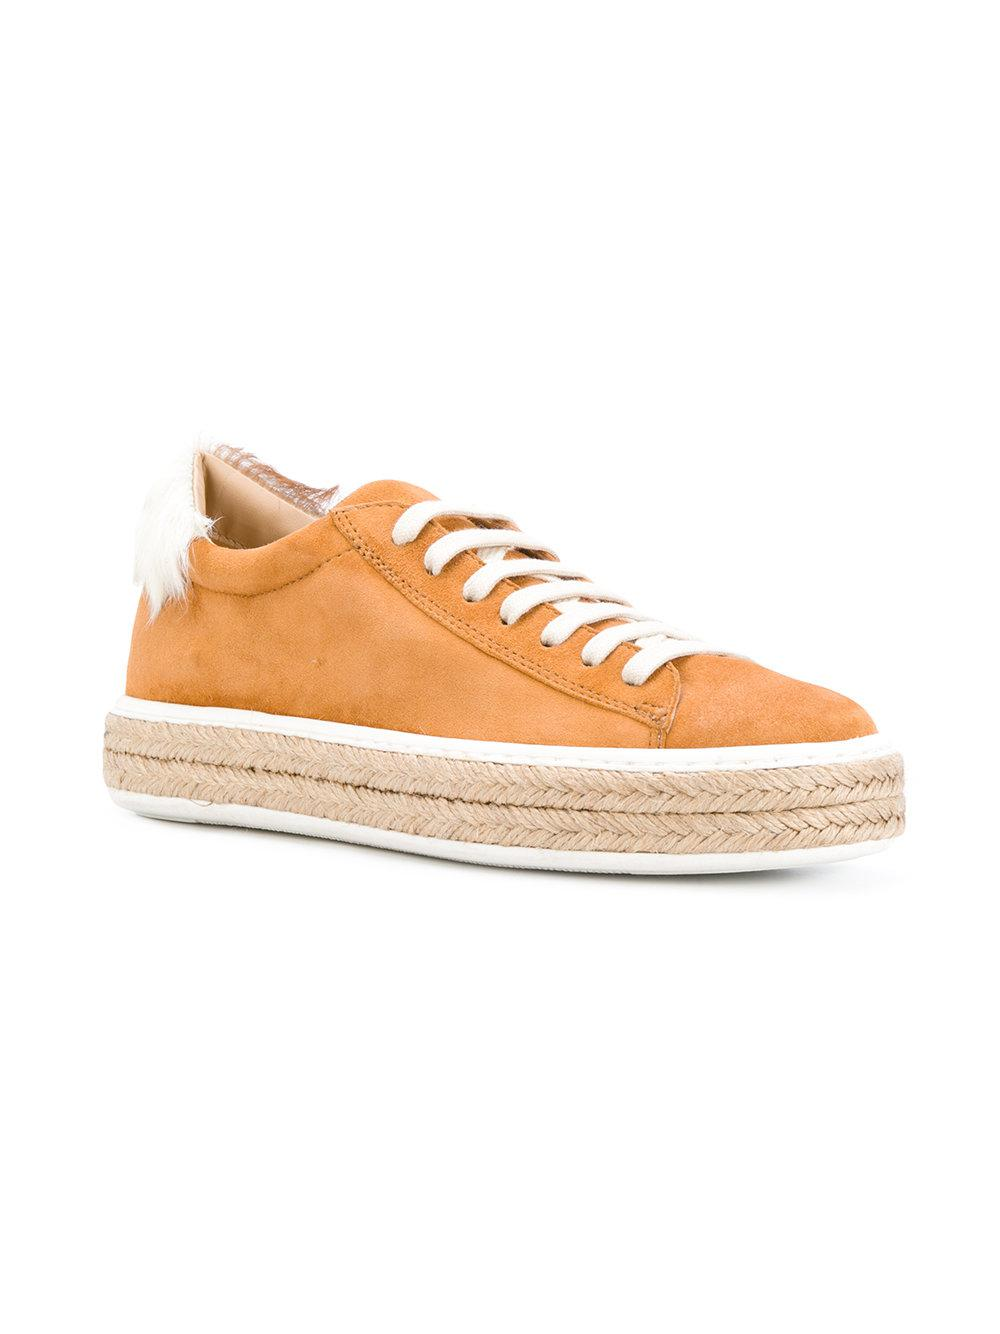 espadrille lace-up sneakers - Yellow & Orange Mr & Mrs Italy Discounts For Sale Sale Excellent Cost Cheap Price Cheap Online Shop Cheap Choice qF4mBEWWt